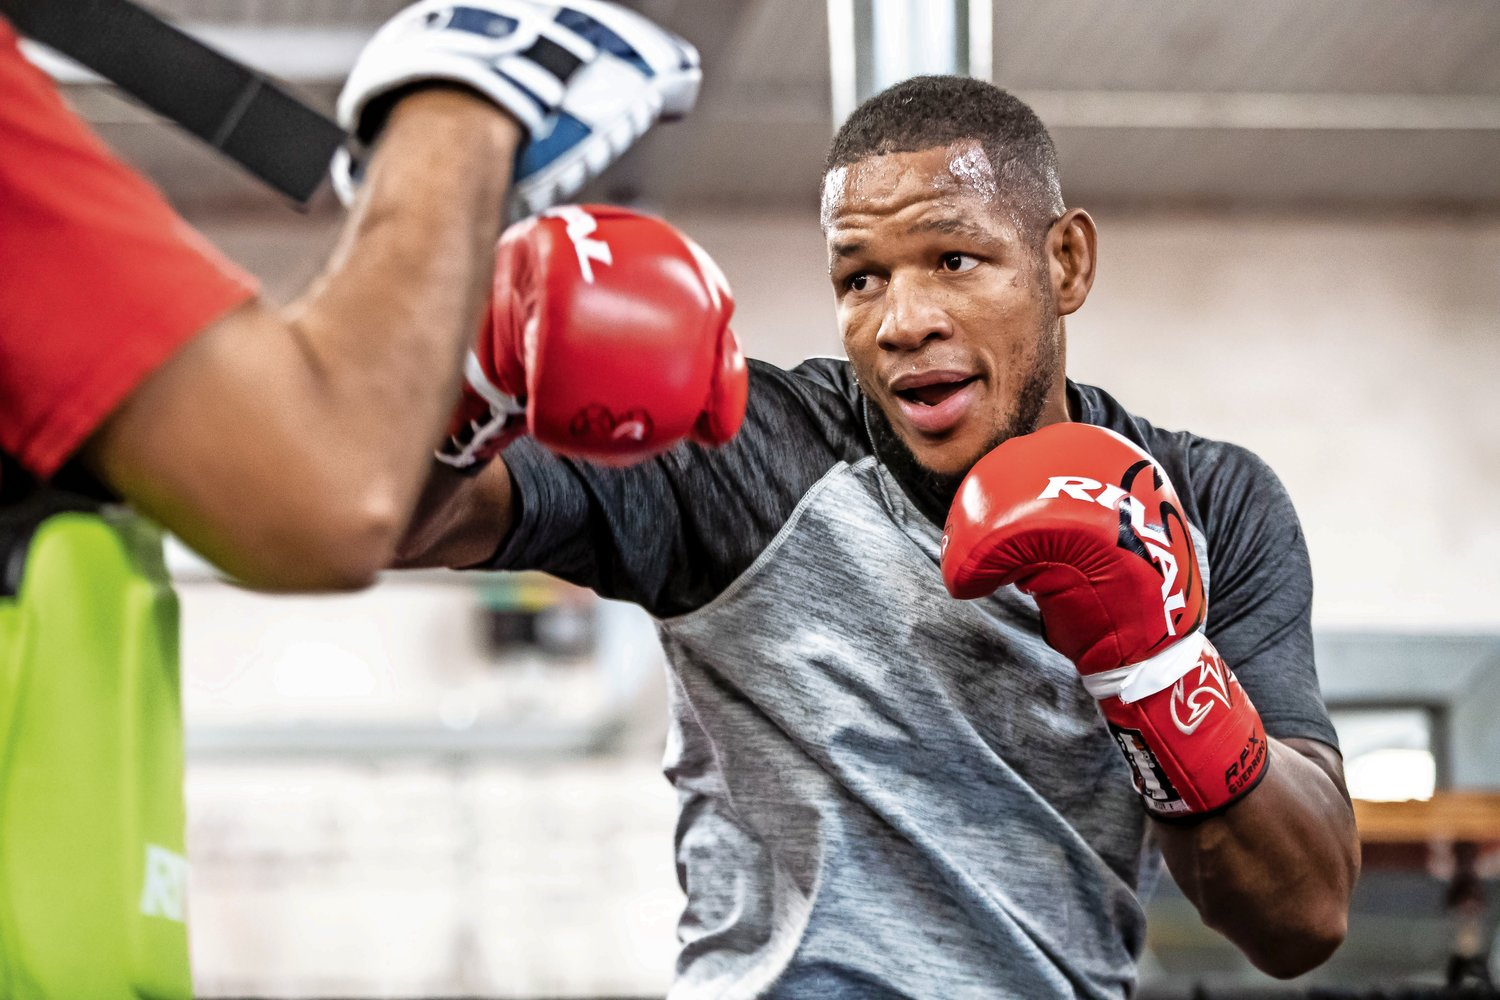 Monaghan will take on Sullivan Barrera, pictured, in a 10-round bout that is the main event. The headline fight will be streamed live on Facebook Watch via the Golden Boy Fight Night Page beginning at 9 p.m.